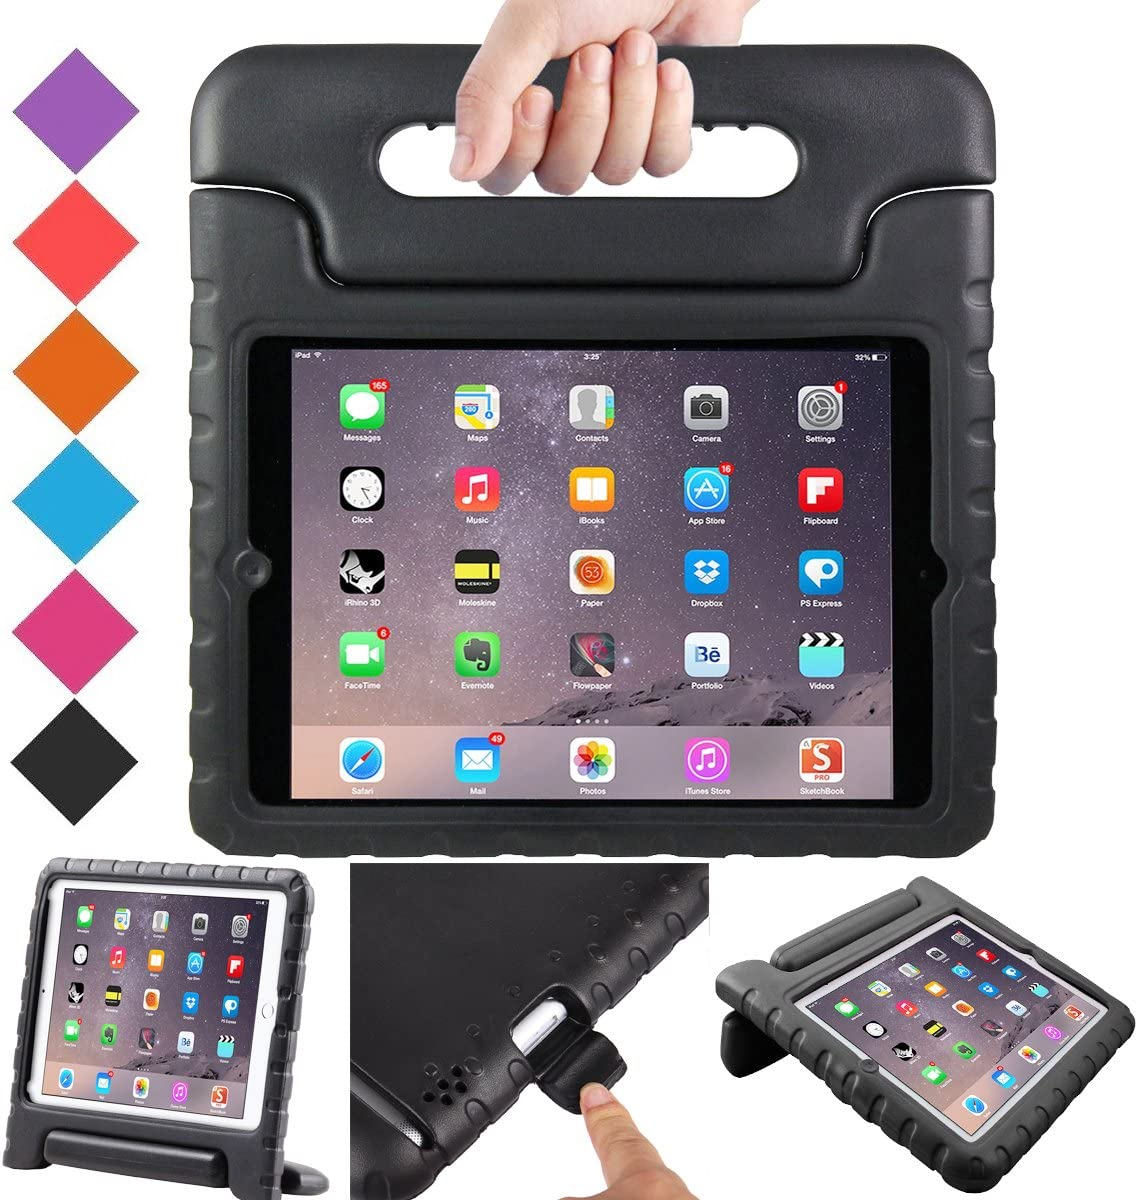 BMOUO ShockProof Convertible Handle Light Weight EVA Protective Stand Kids Case for Apple iPad 4, iPad 3 and iPad 2 - Black